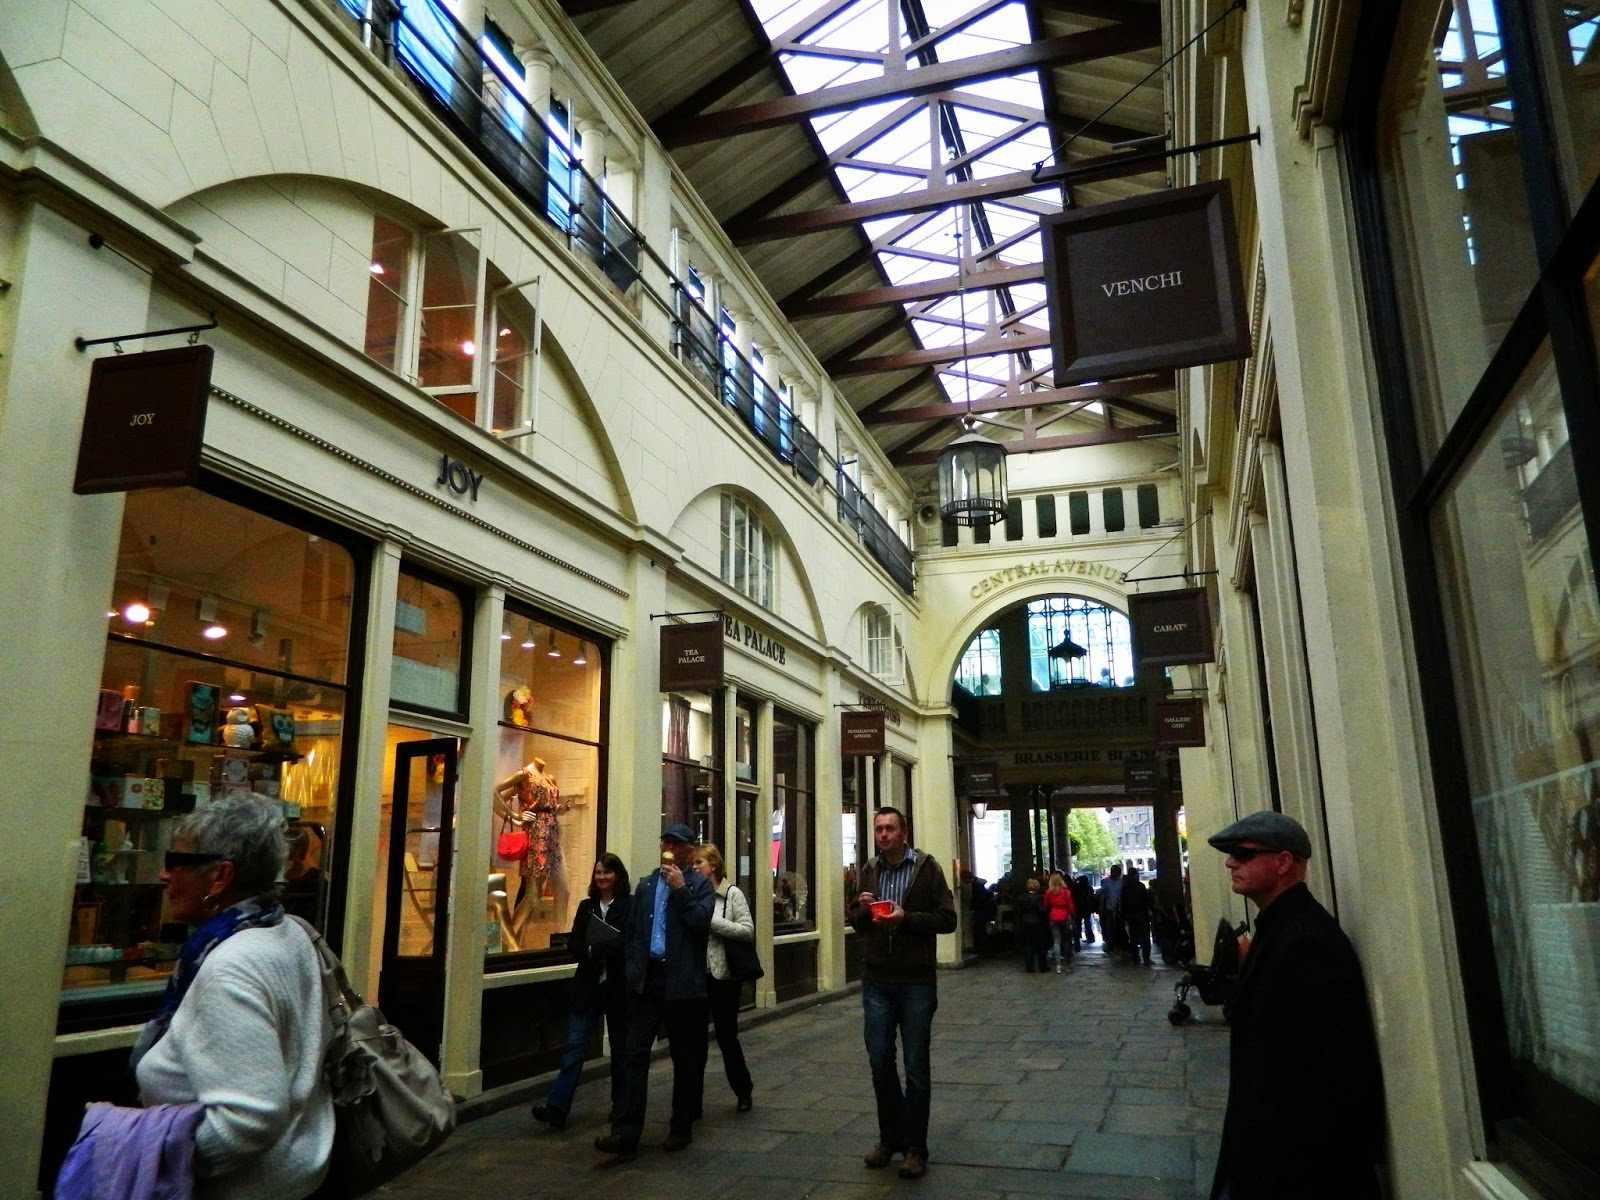 covent  garden pretty shops architecture ceiling floor wooden beams windows people